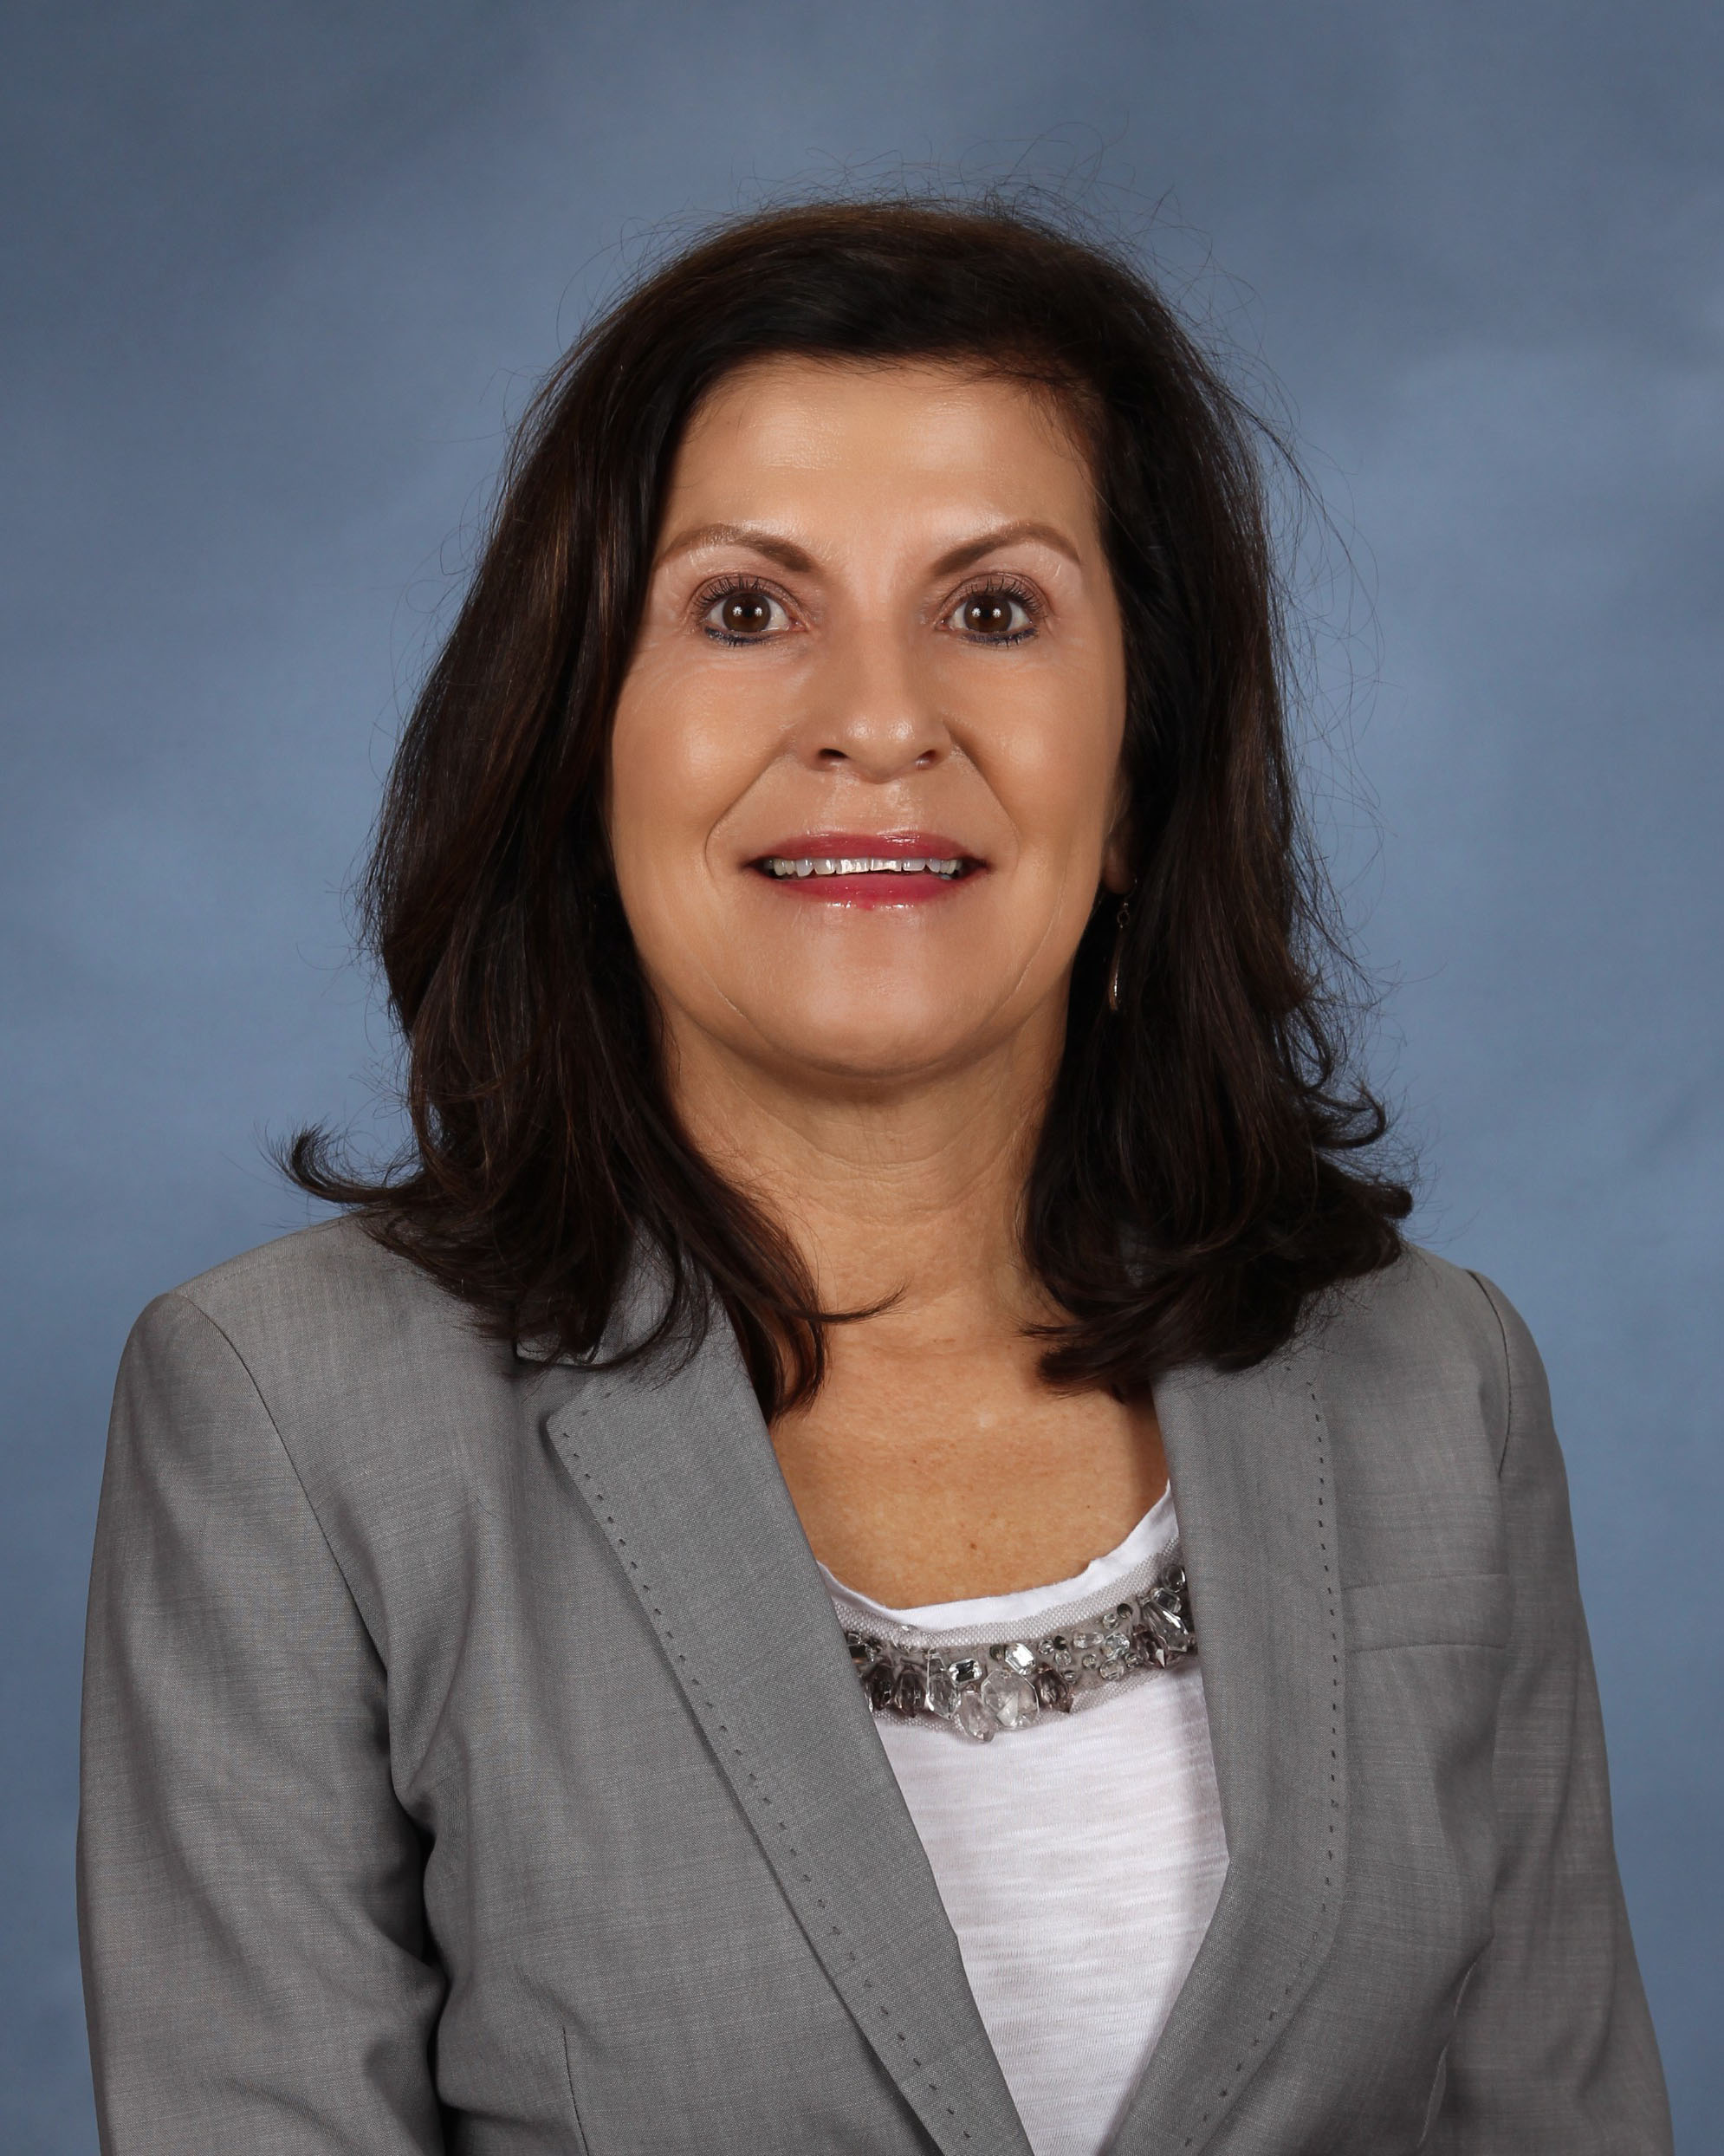 Maggie MacIsaac-Supt. Page